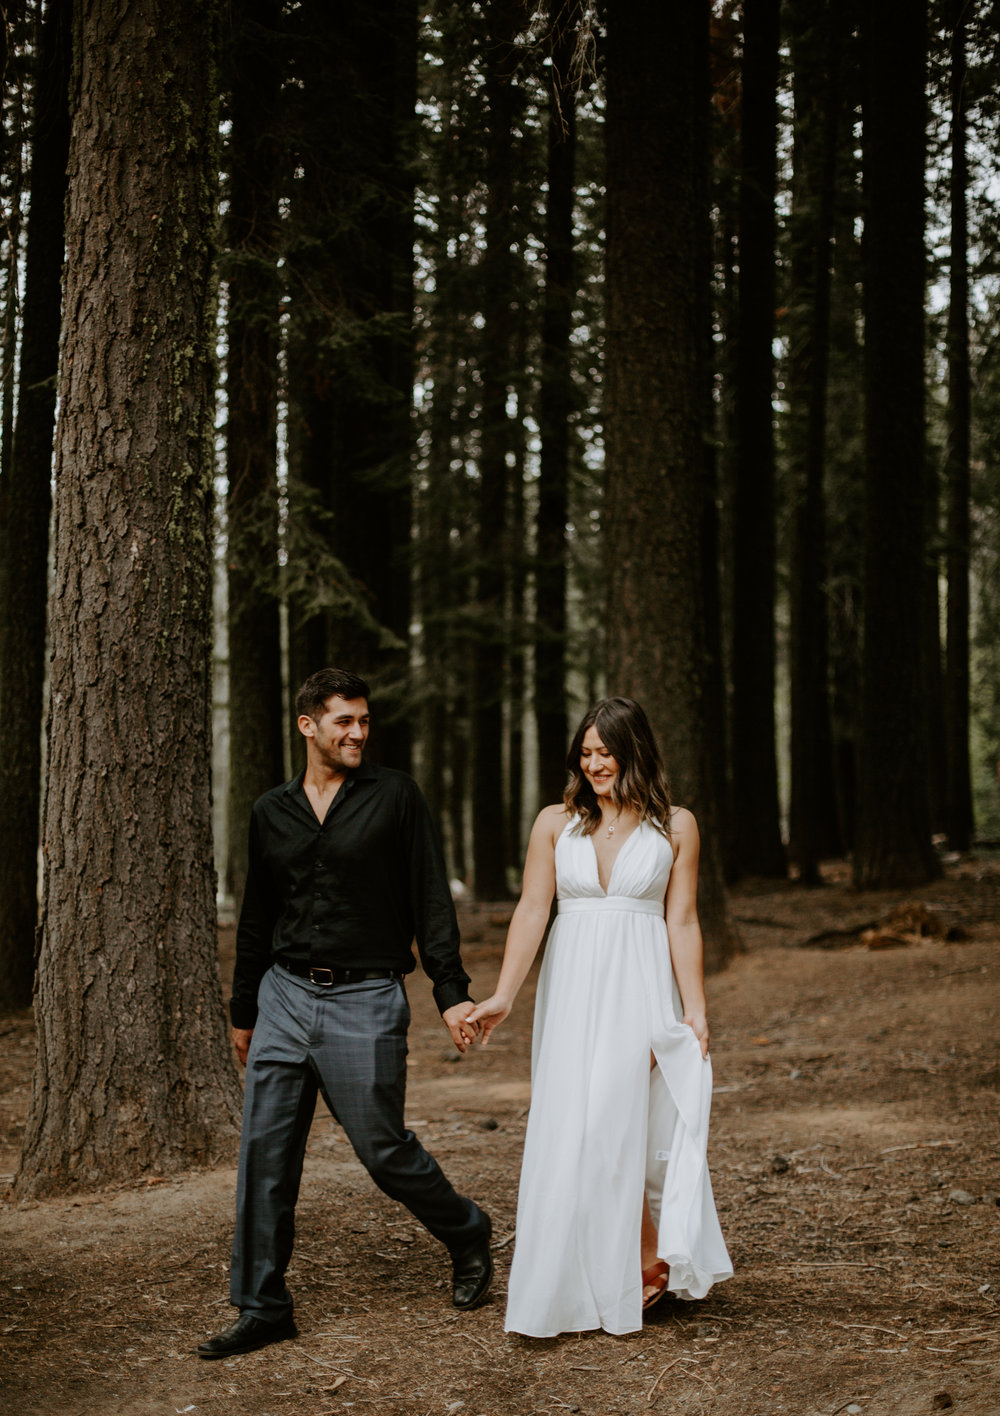 nicole-daacke-photography-yosemite-national-park-fall-elopement-adventurous-free-spirit-boho-bohemian-elopement-olmsted-point-yosemite-california-elope-adventure-elopement-photographer-5.jpg